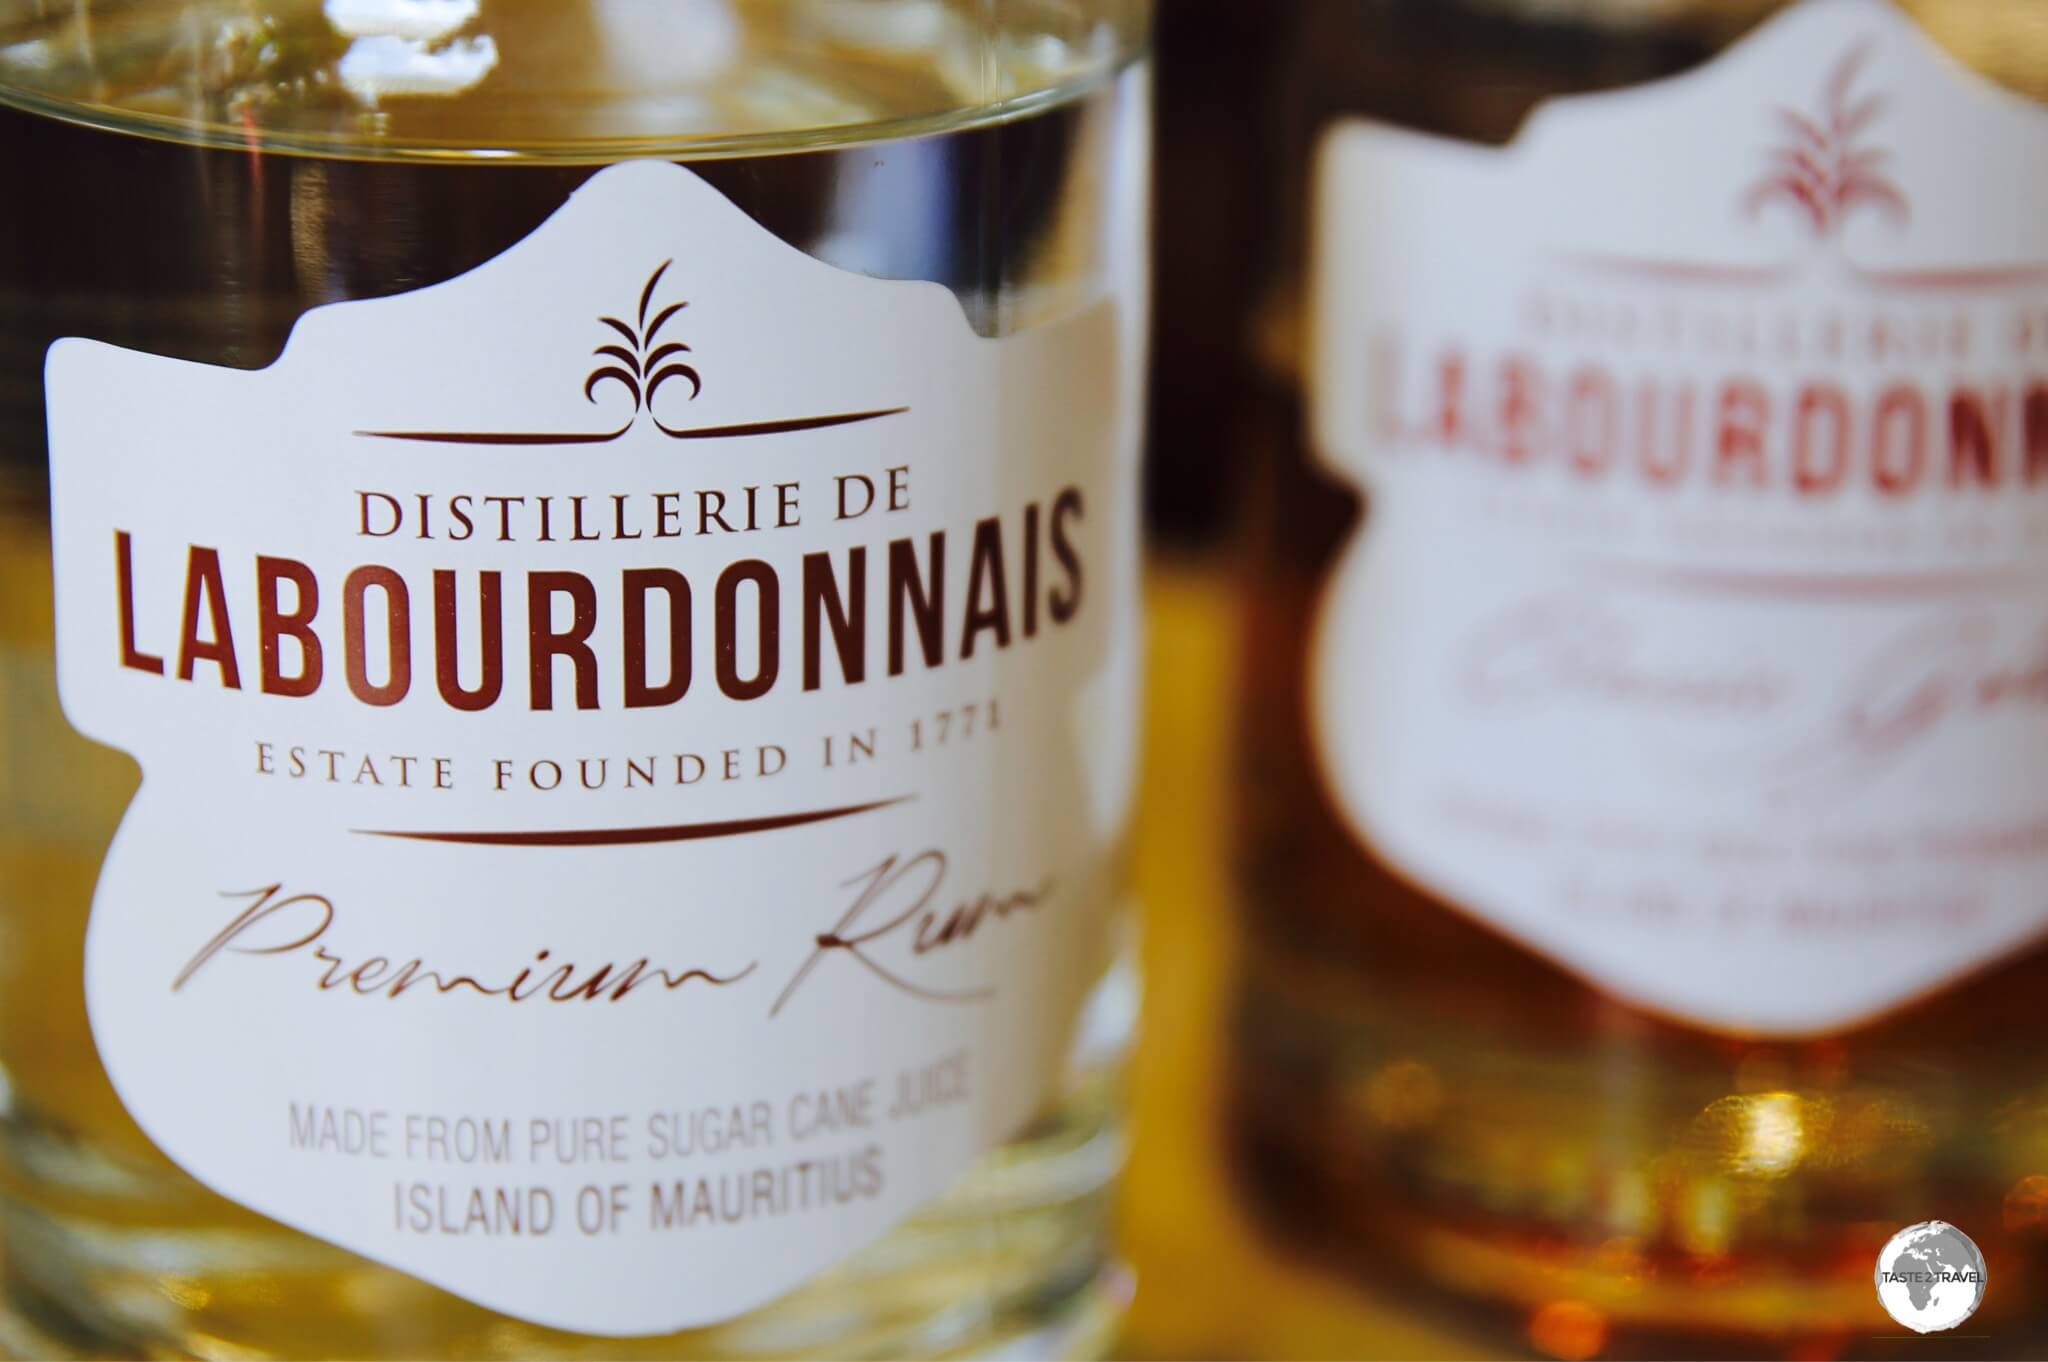 The Labourdonnais distillery produces both dark and white rums.